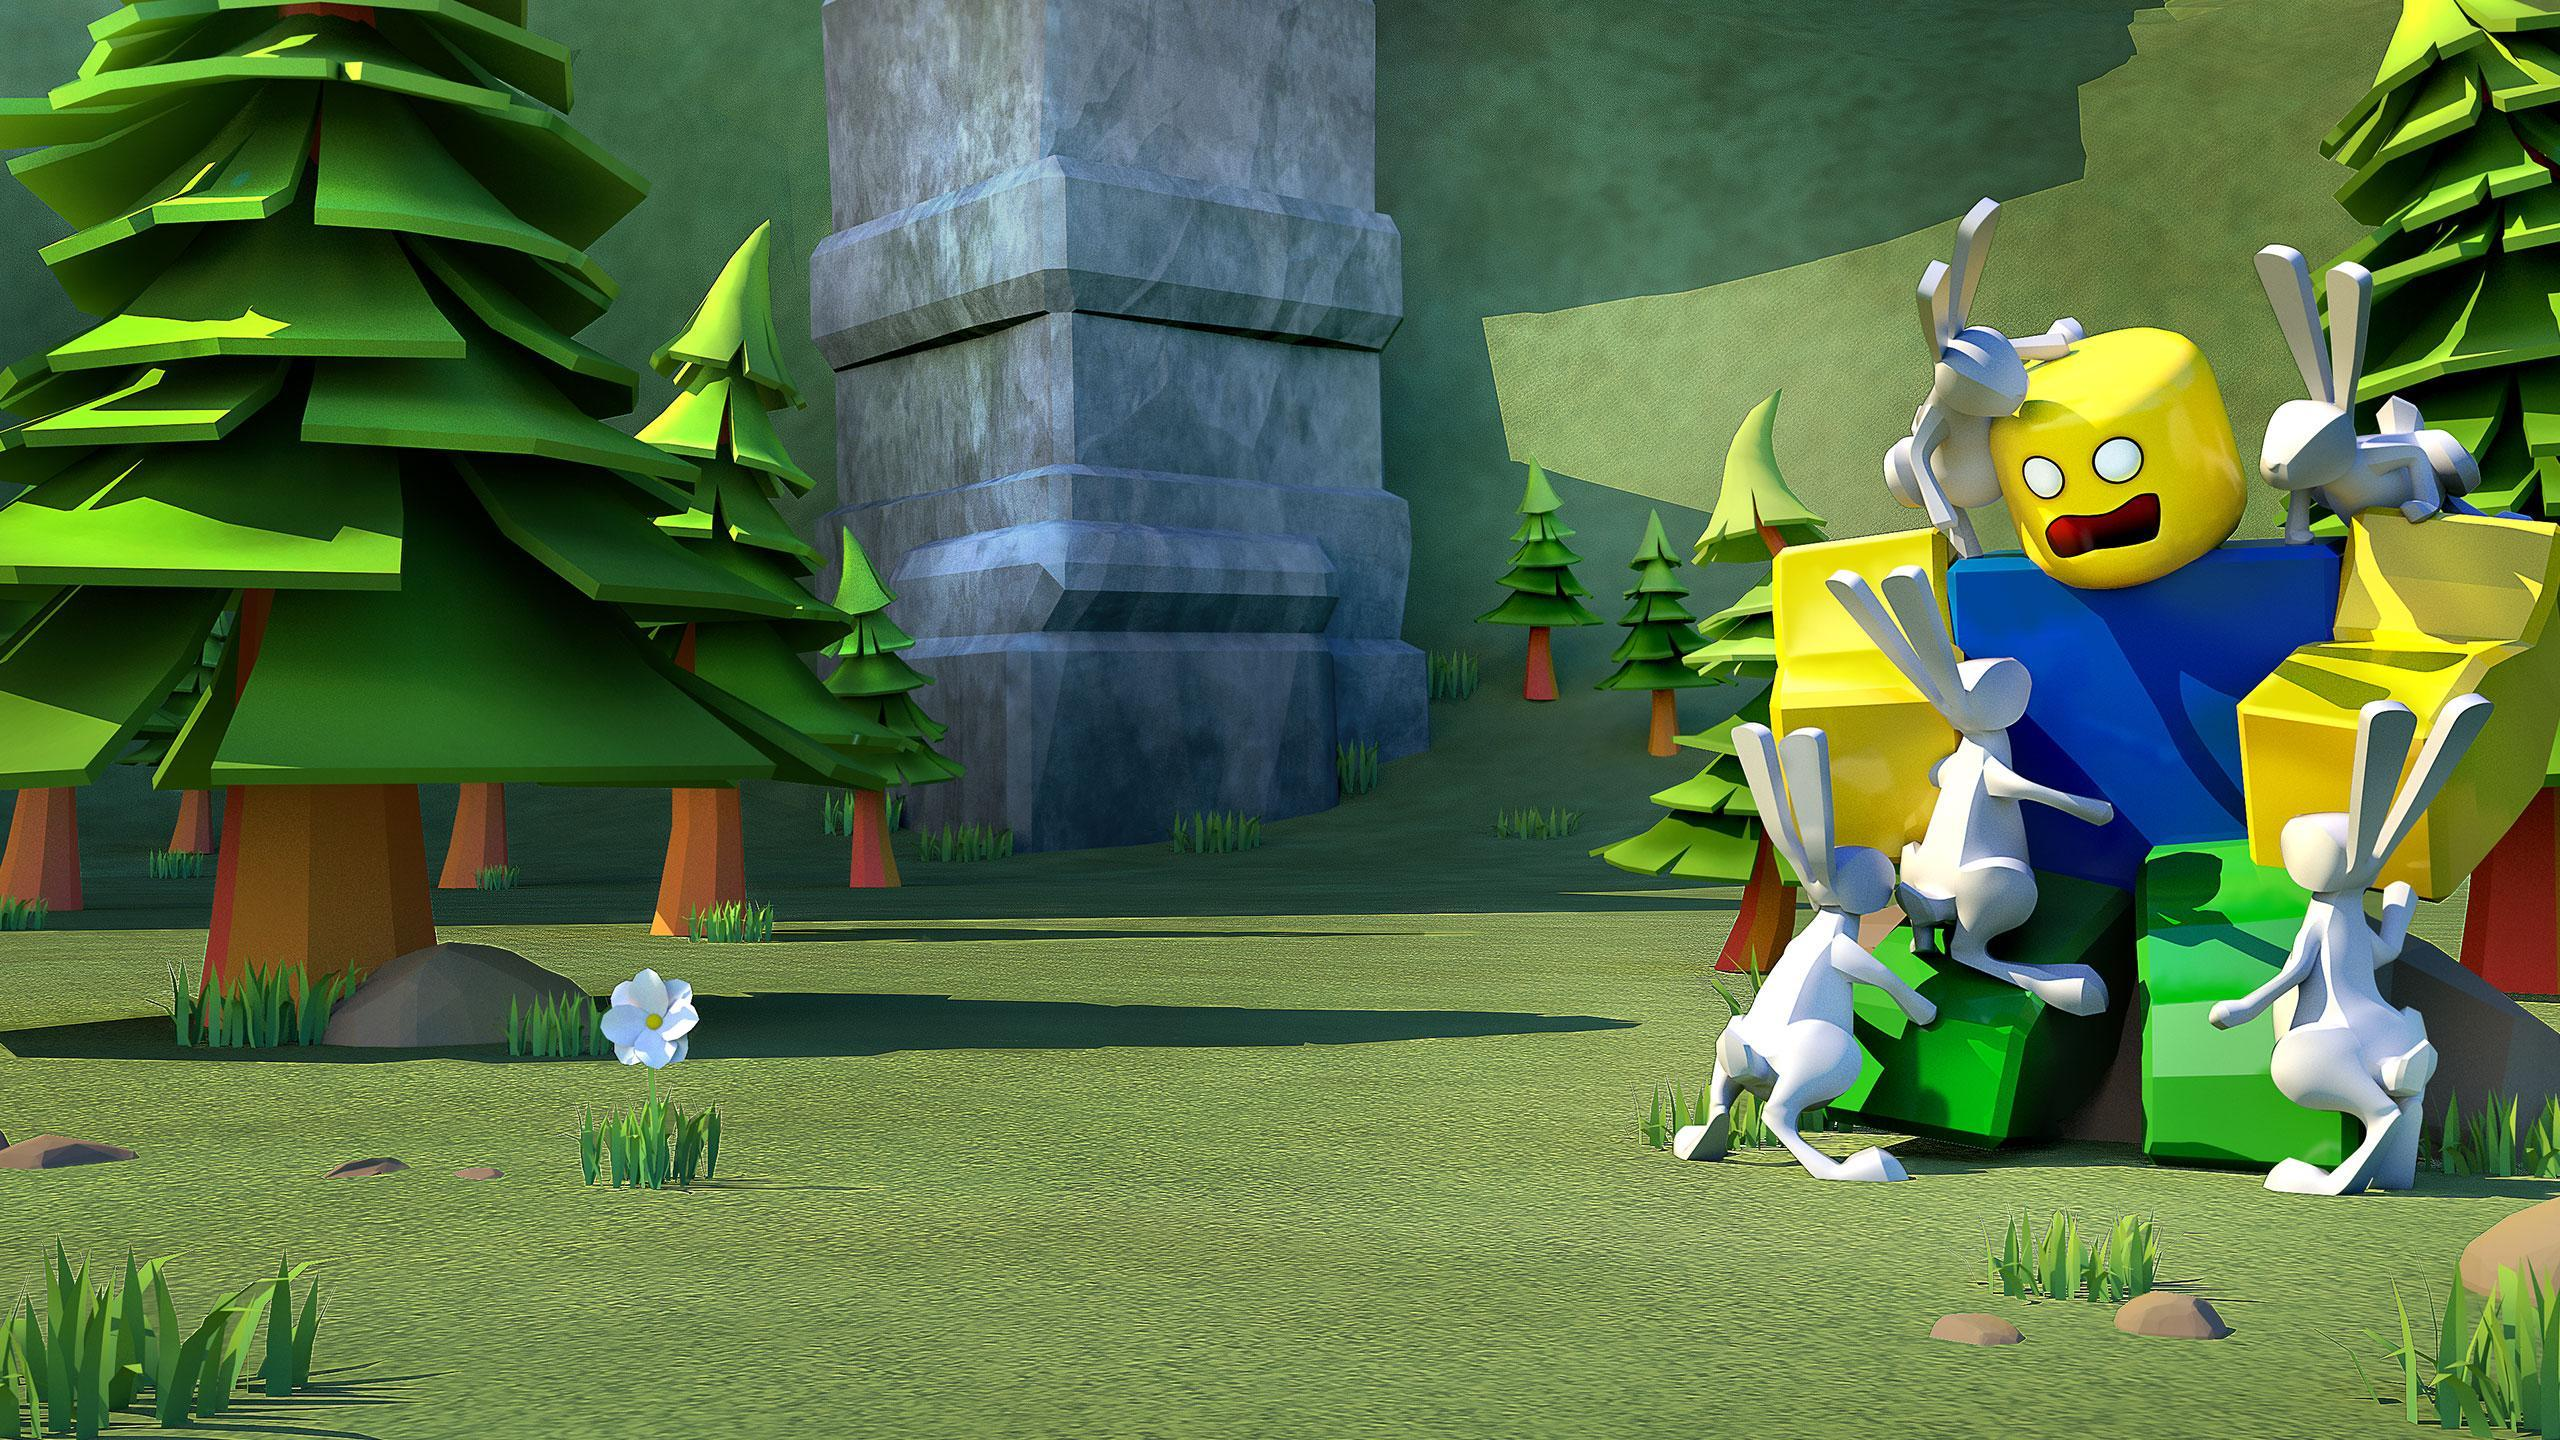 Roblox Wallpapers Posted By Ethan Thompson